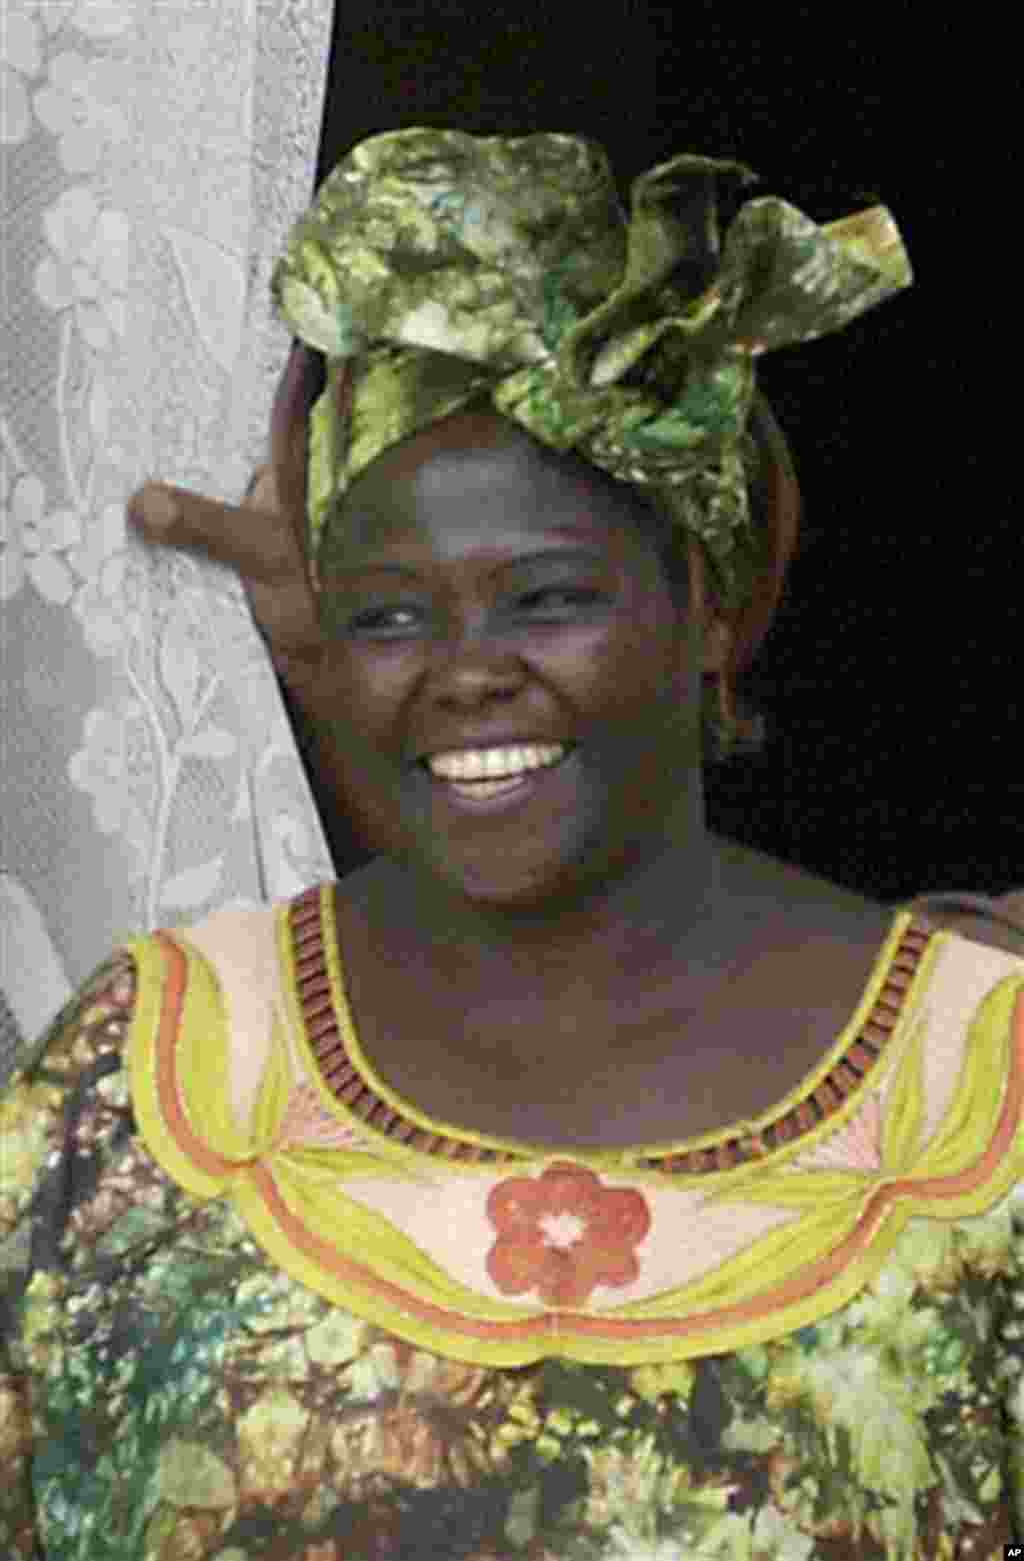 2004: Wangari Maathai, Kenya. She developed the Green Belt Movement for women in Africa to conserve the environment and improve their lives by planting trees. (AP)